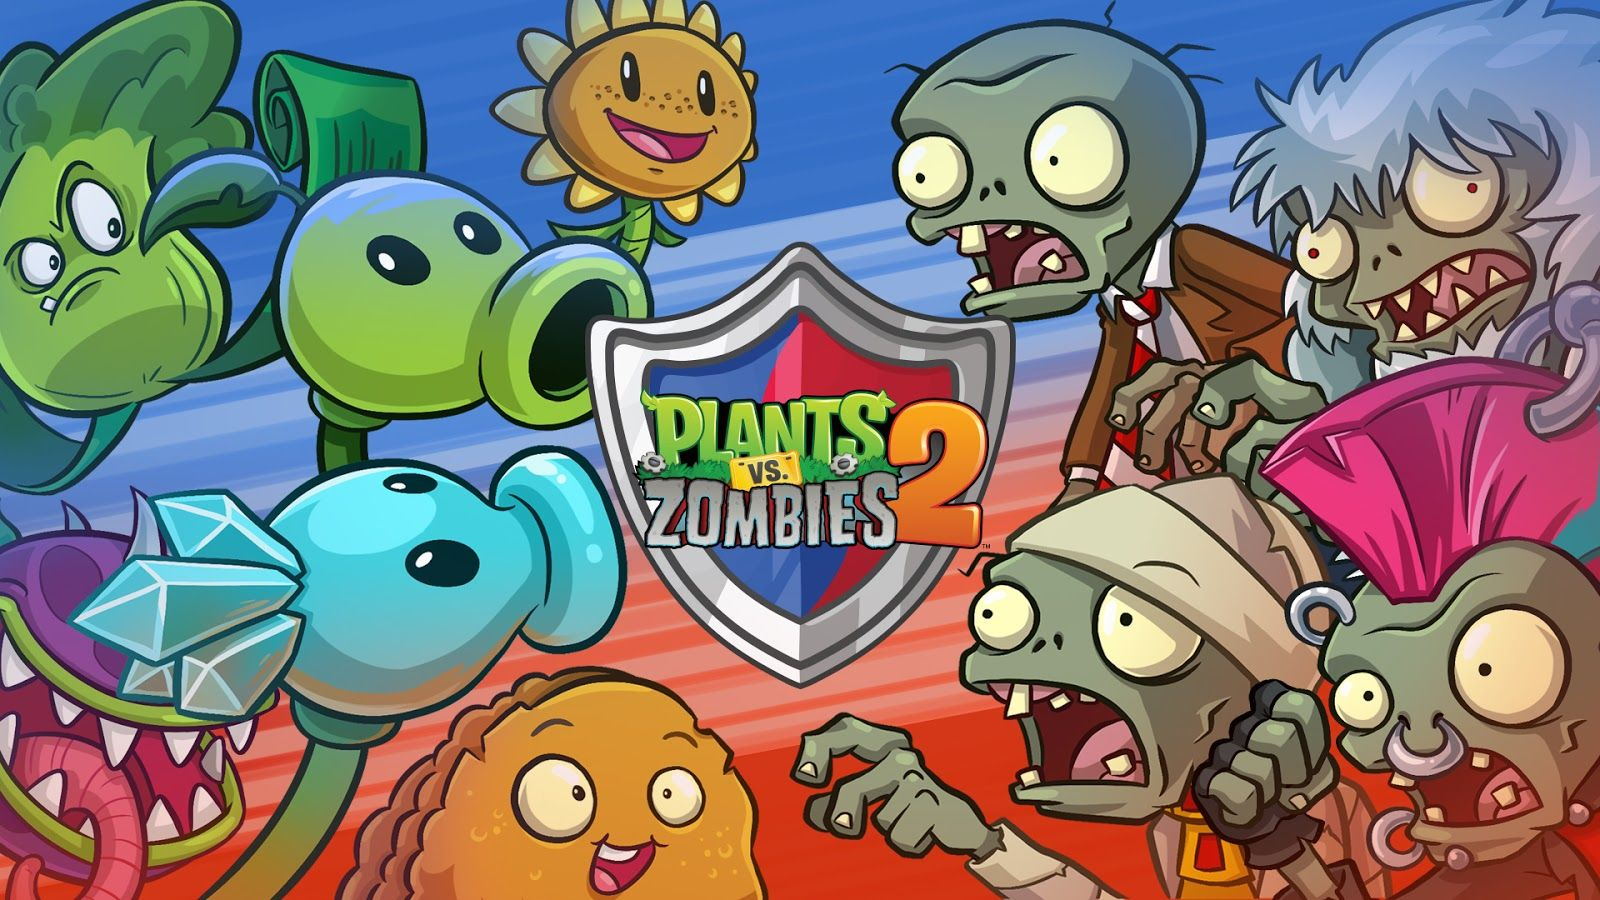 Plants vs zombies 2 update brings pvp mode plants vs zombies 2 update brings pvp mode voltagebd Choice Image